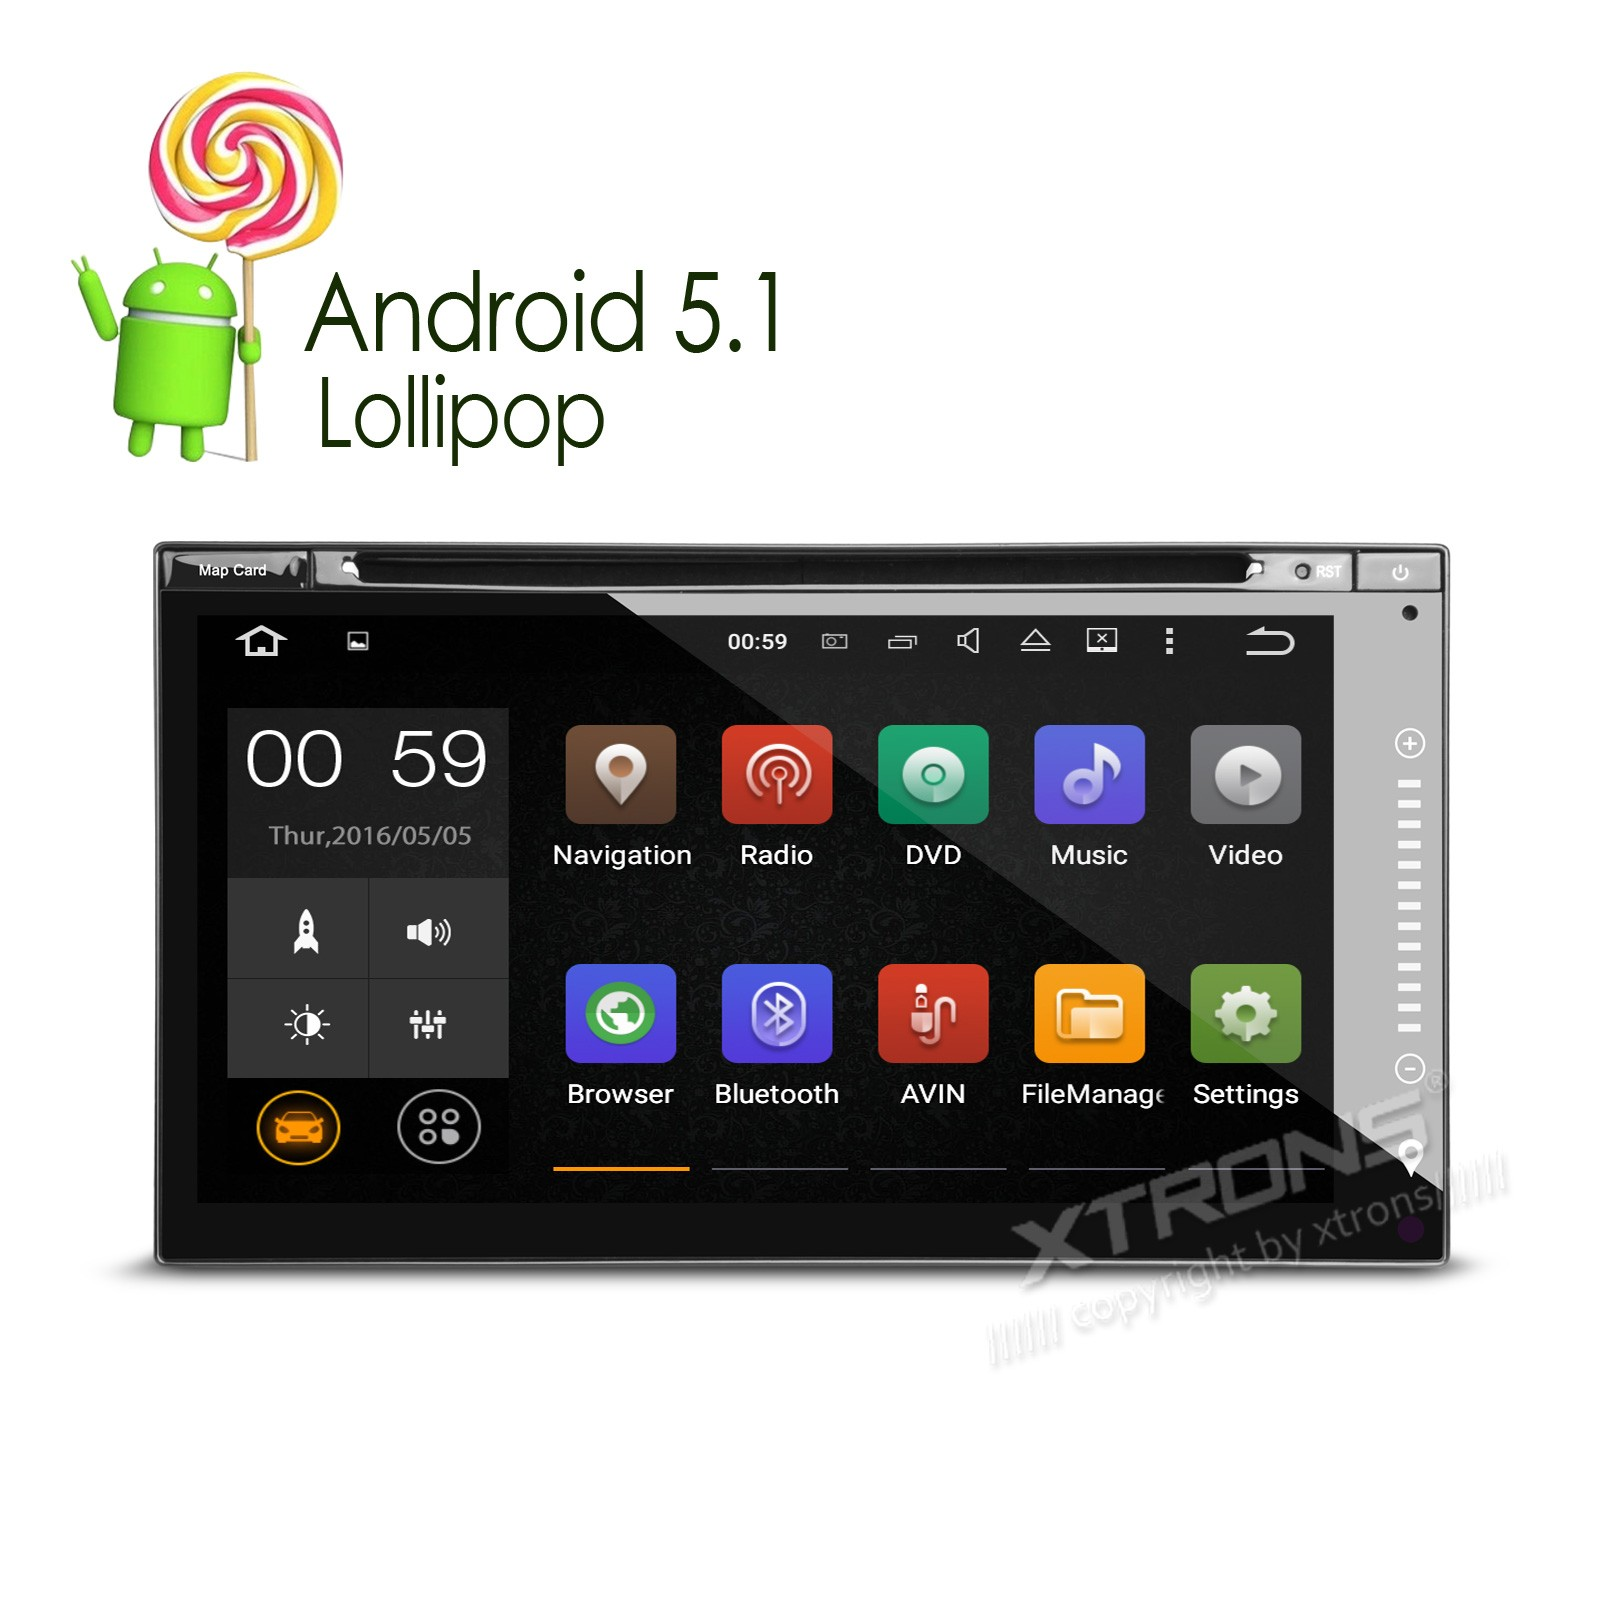 """6.95"""" Android 5.1 OS Double Din Car DVD Two Din Car Radio 2 Din Car Navigation with MPEG2/4 DVB-T Digital TV Function(China (Mainland))"""